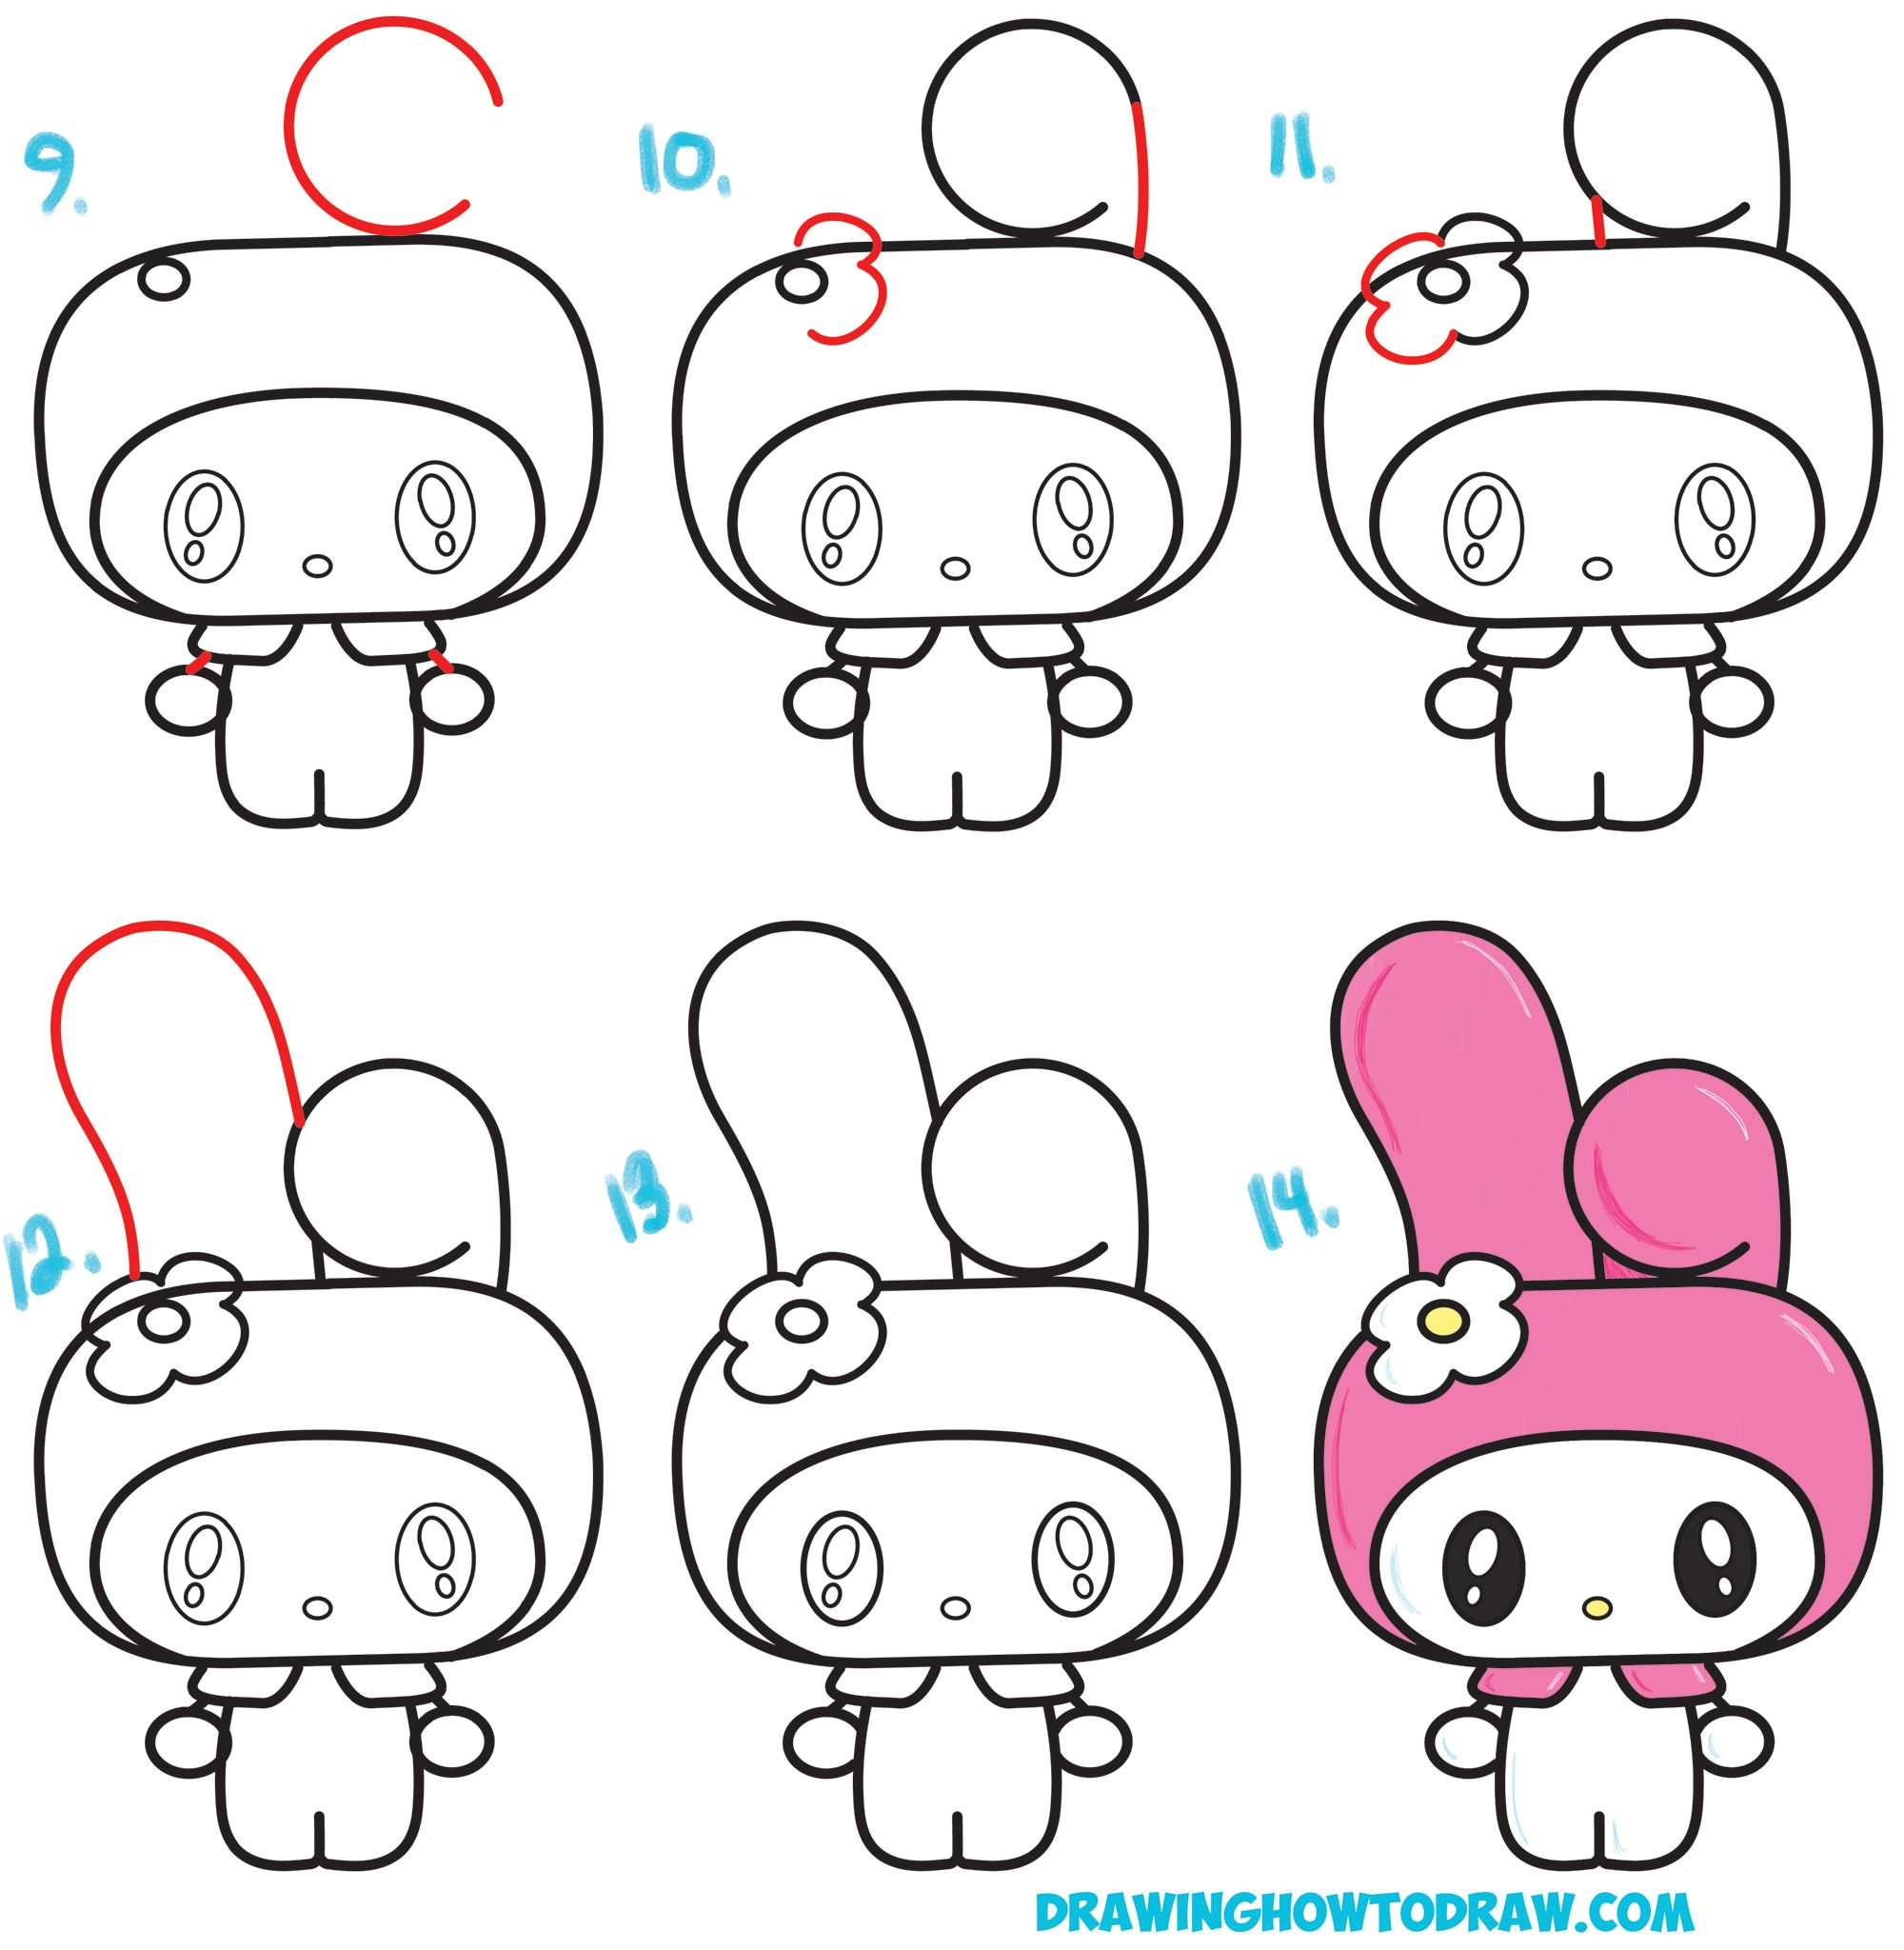 How To Draw Kawaii Chibi My Melody From Hello Kitty A Cute Bunny With A Hood On Easy Steps Drawing Lesson How To Draw Step By Step Drawing